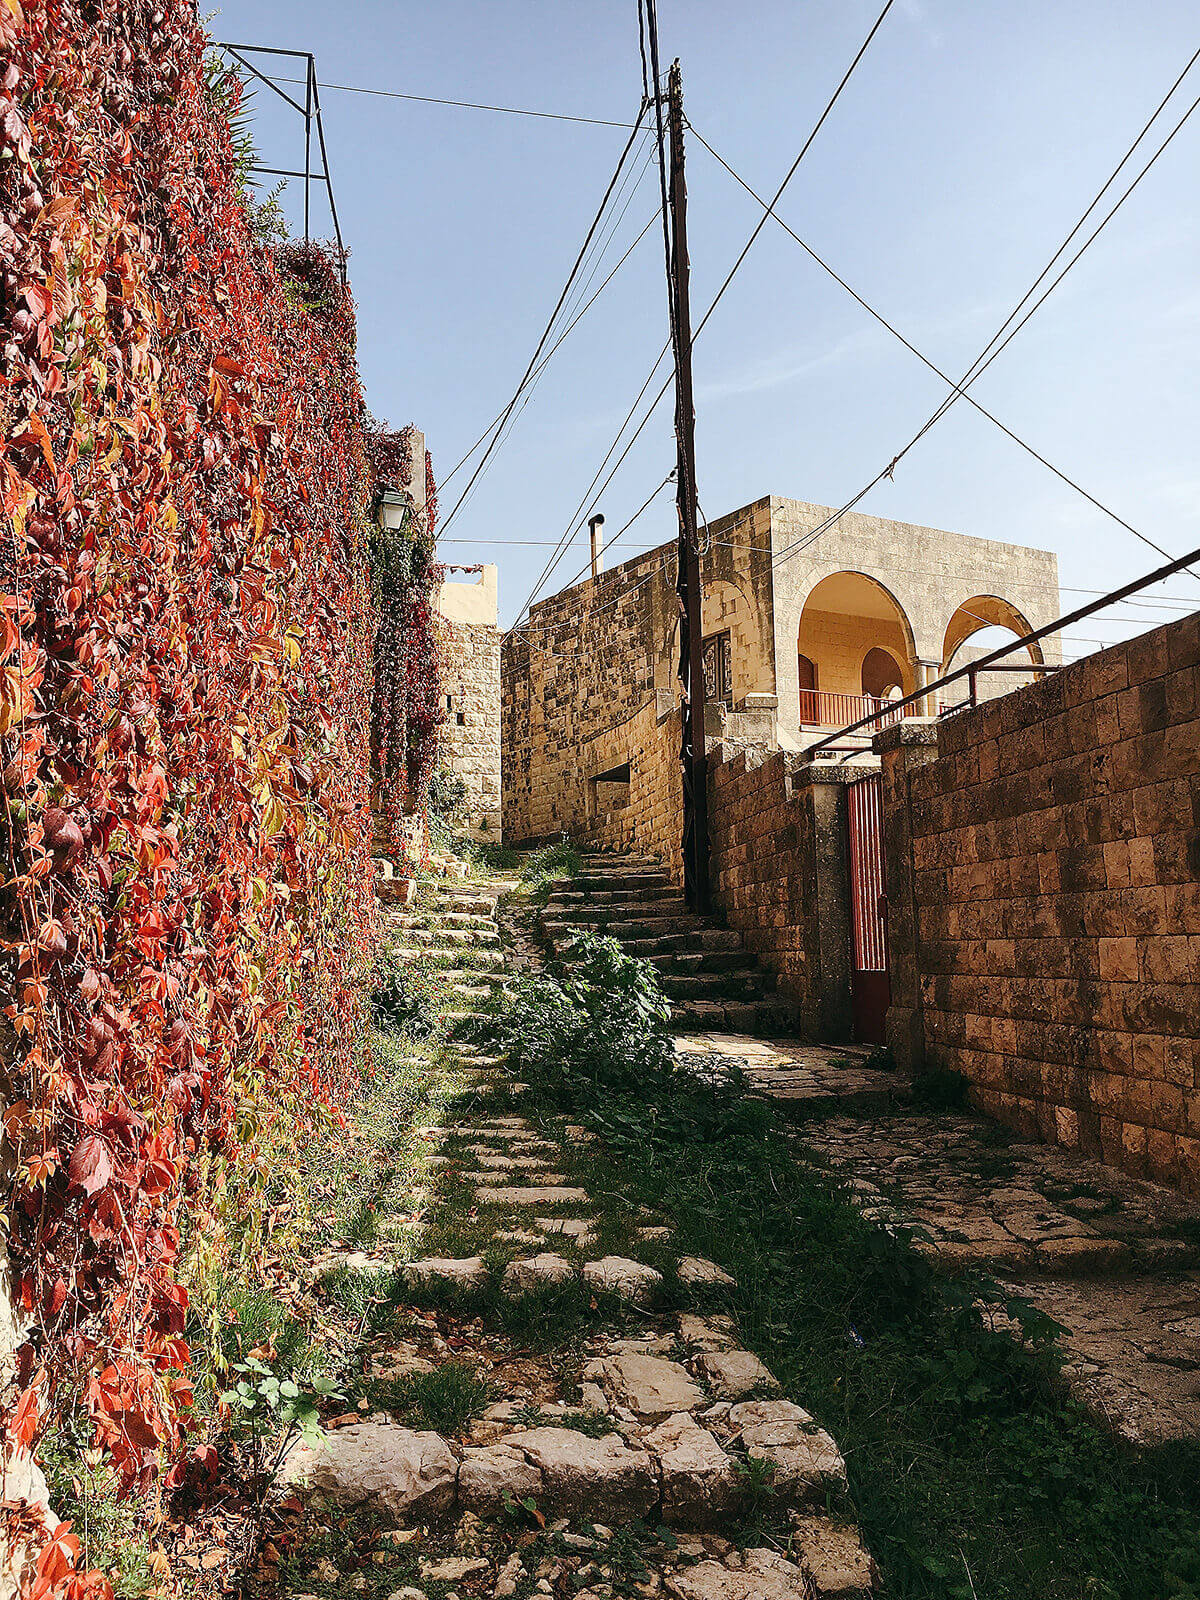 The charming streets of Deir El Qamar